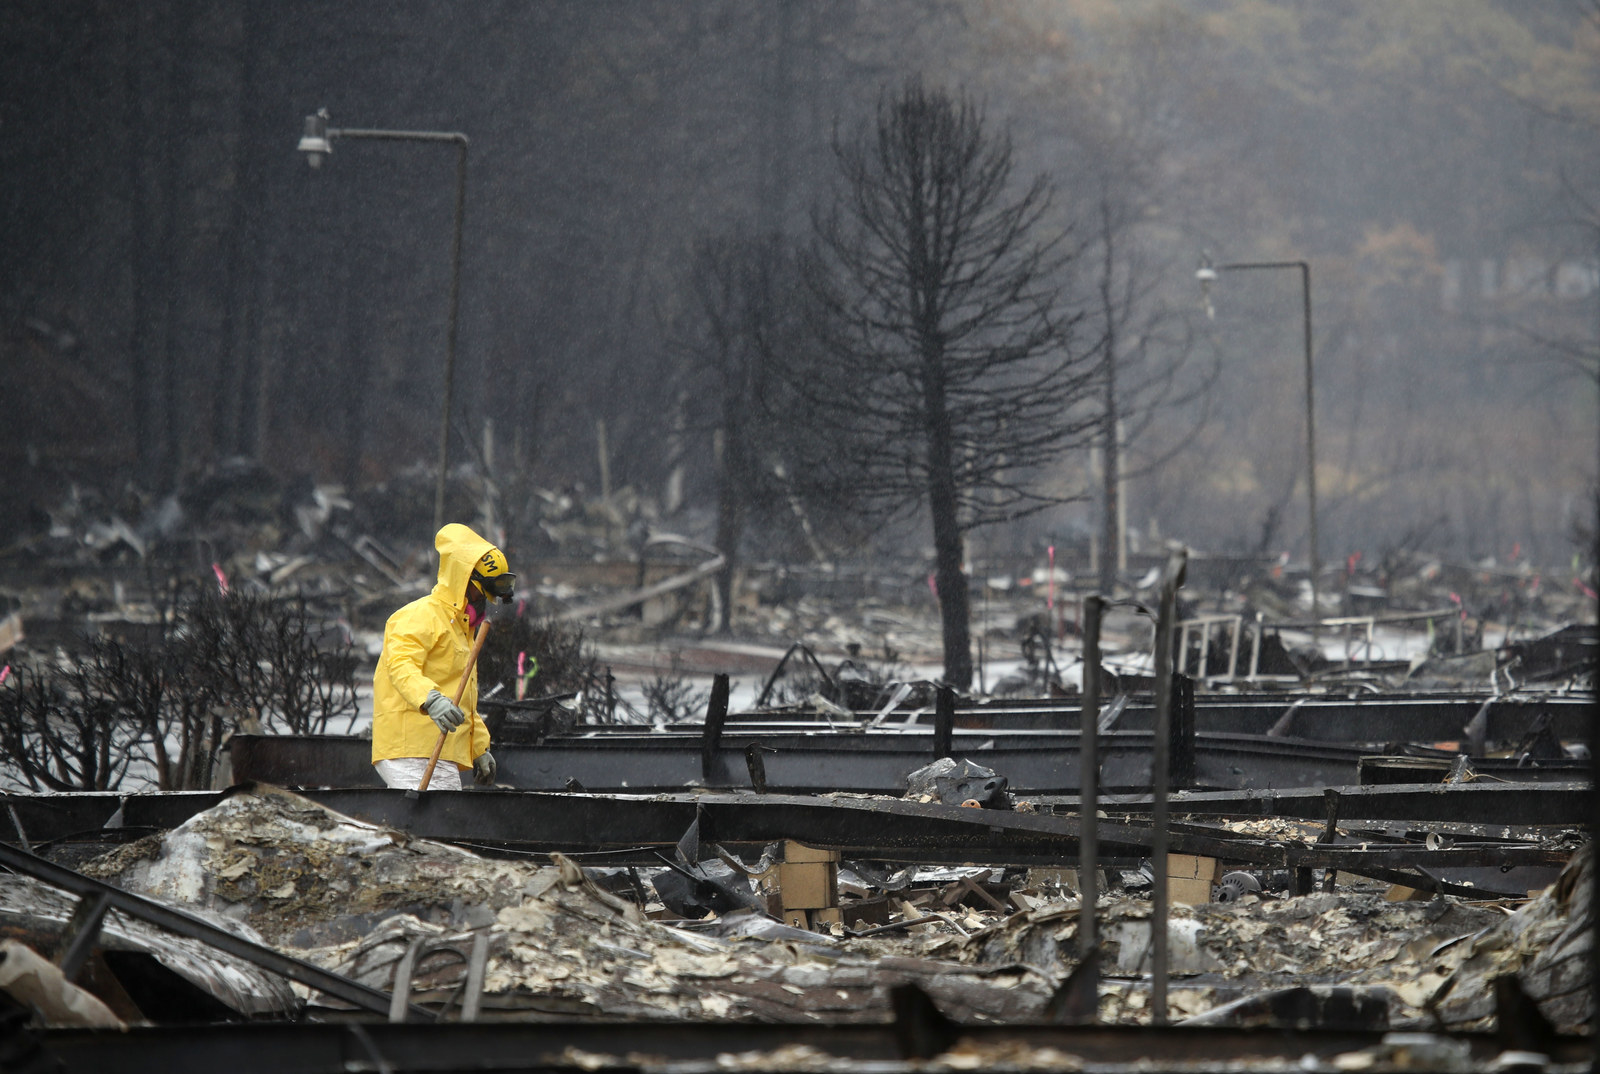 A search and rescue crew member searches for human remains at a mobile home park destroyed by the Camp fire in Paradise, California.